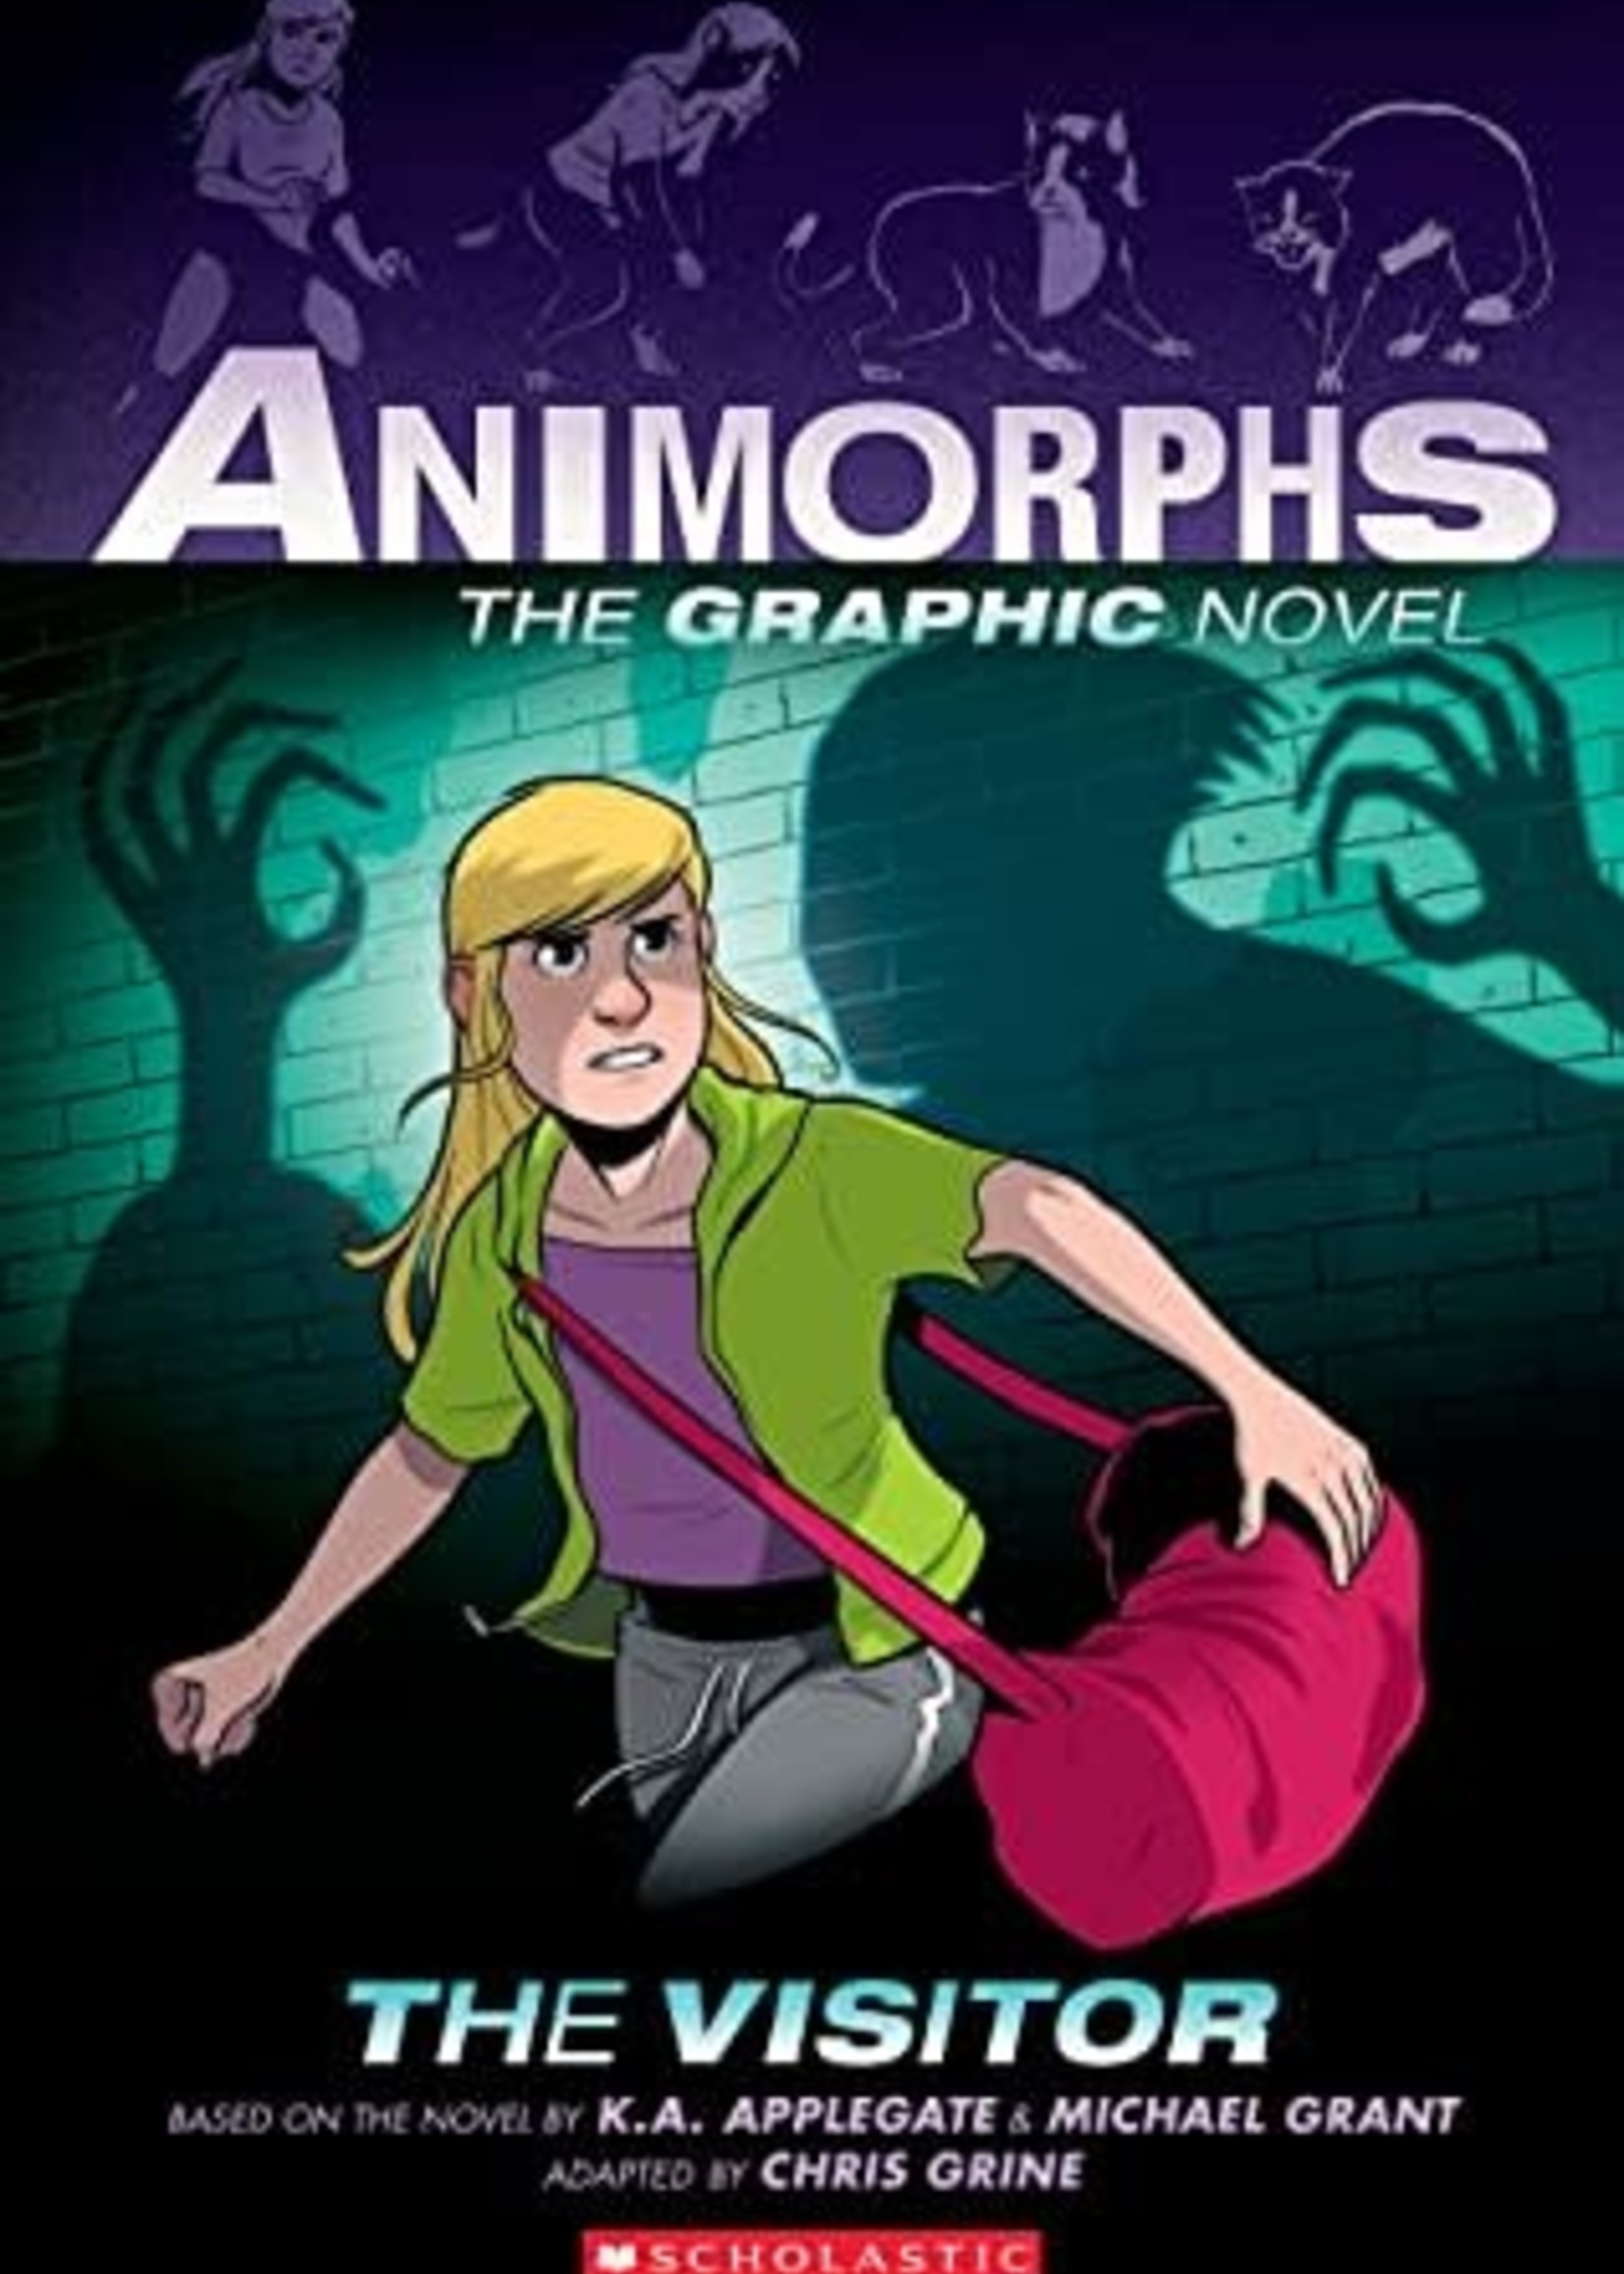 The Visitor (Animorphs Graphix #2) by K.A. Applegate,  Michael Grant,  Chris Grine